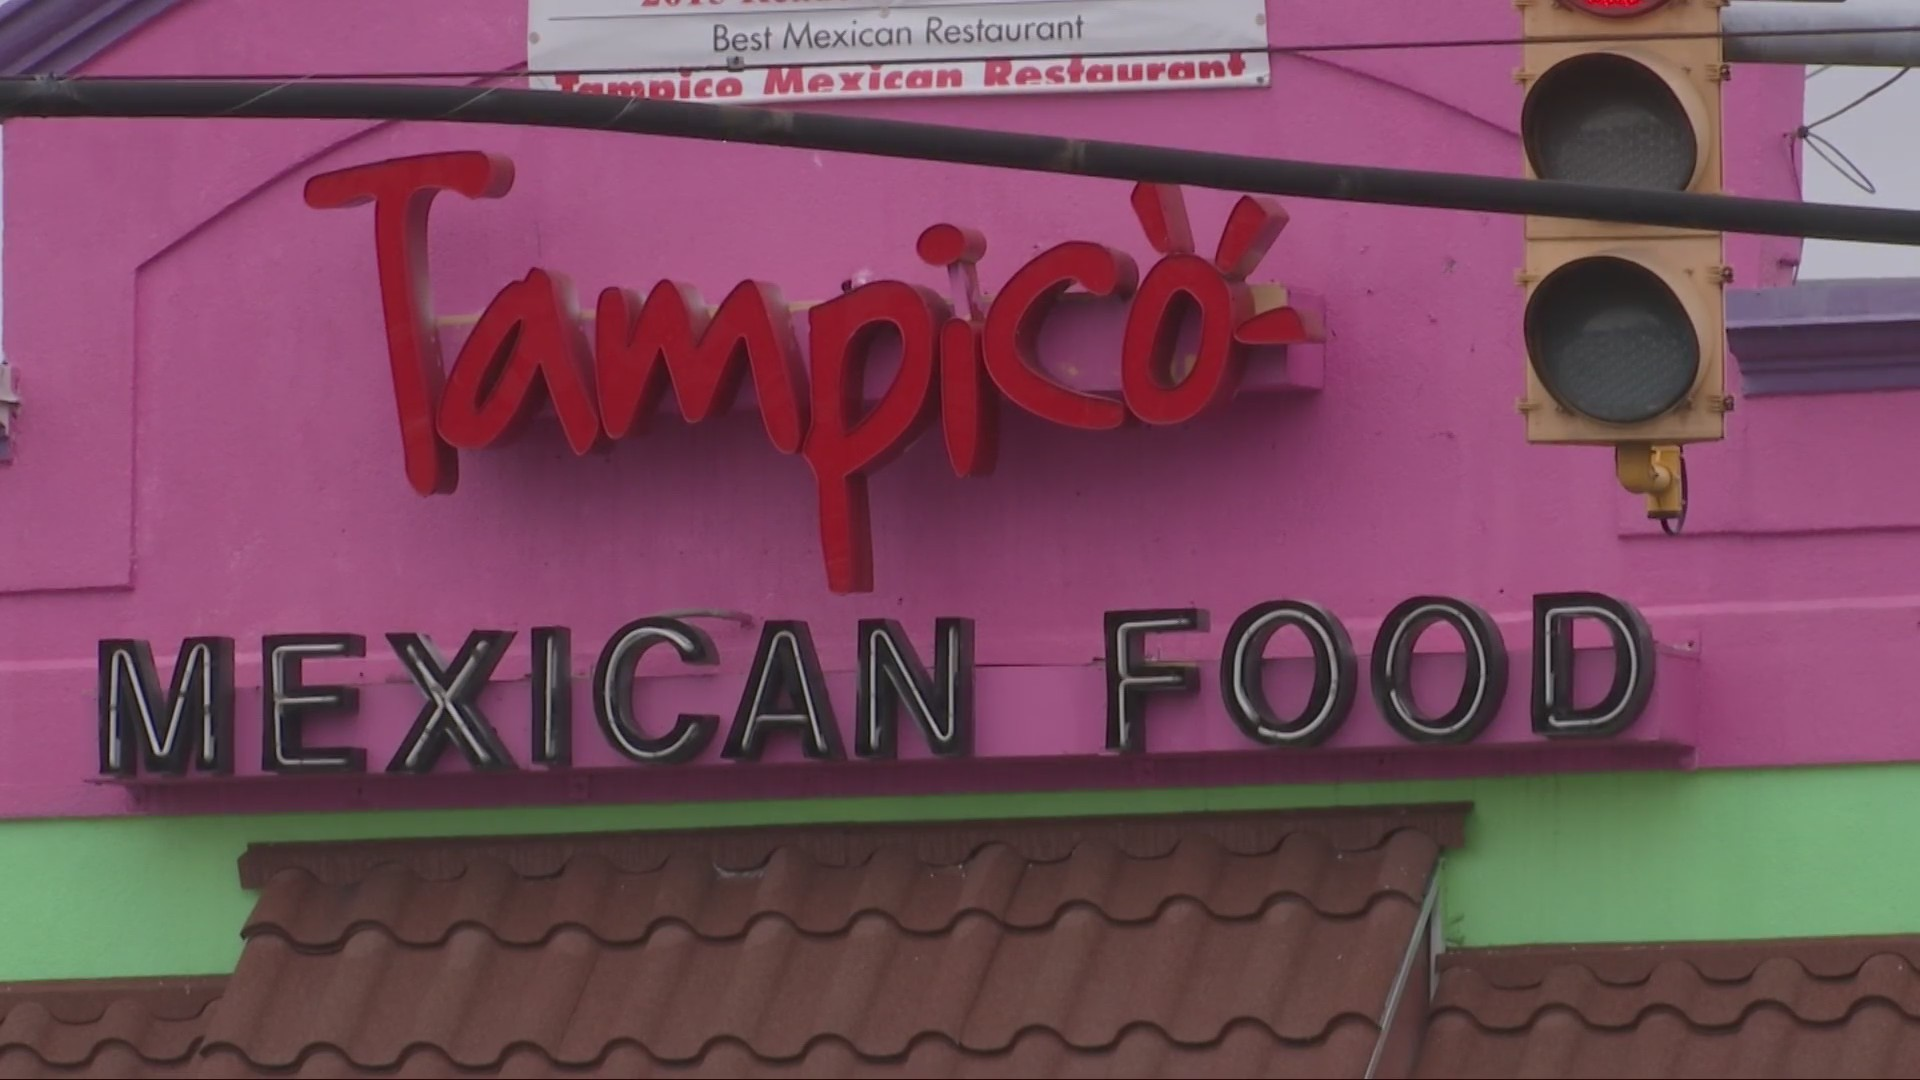 Parkersburg Mexican Restaurant Sees Support After Woman's Racist Rant Goes Viral